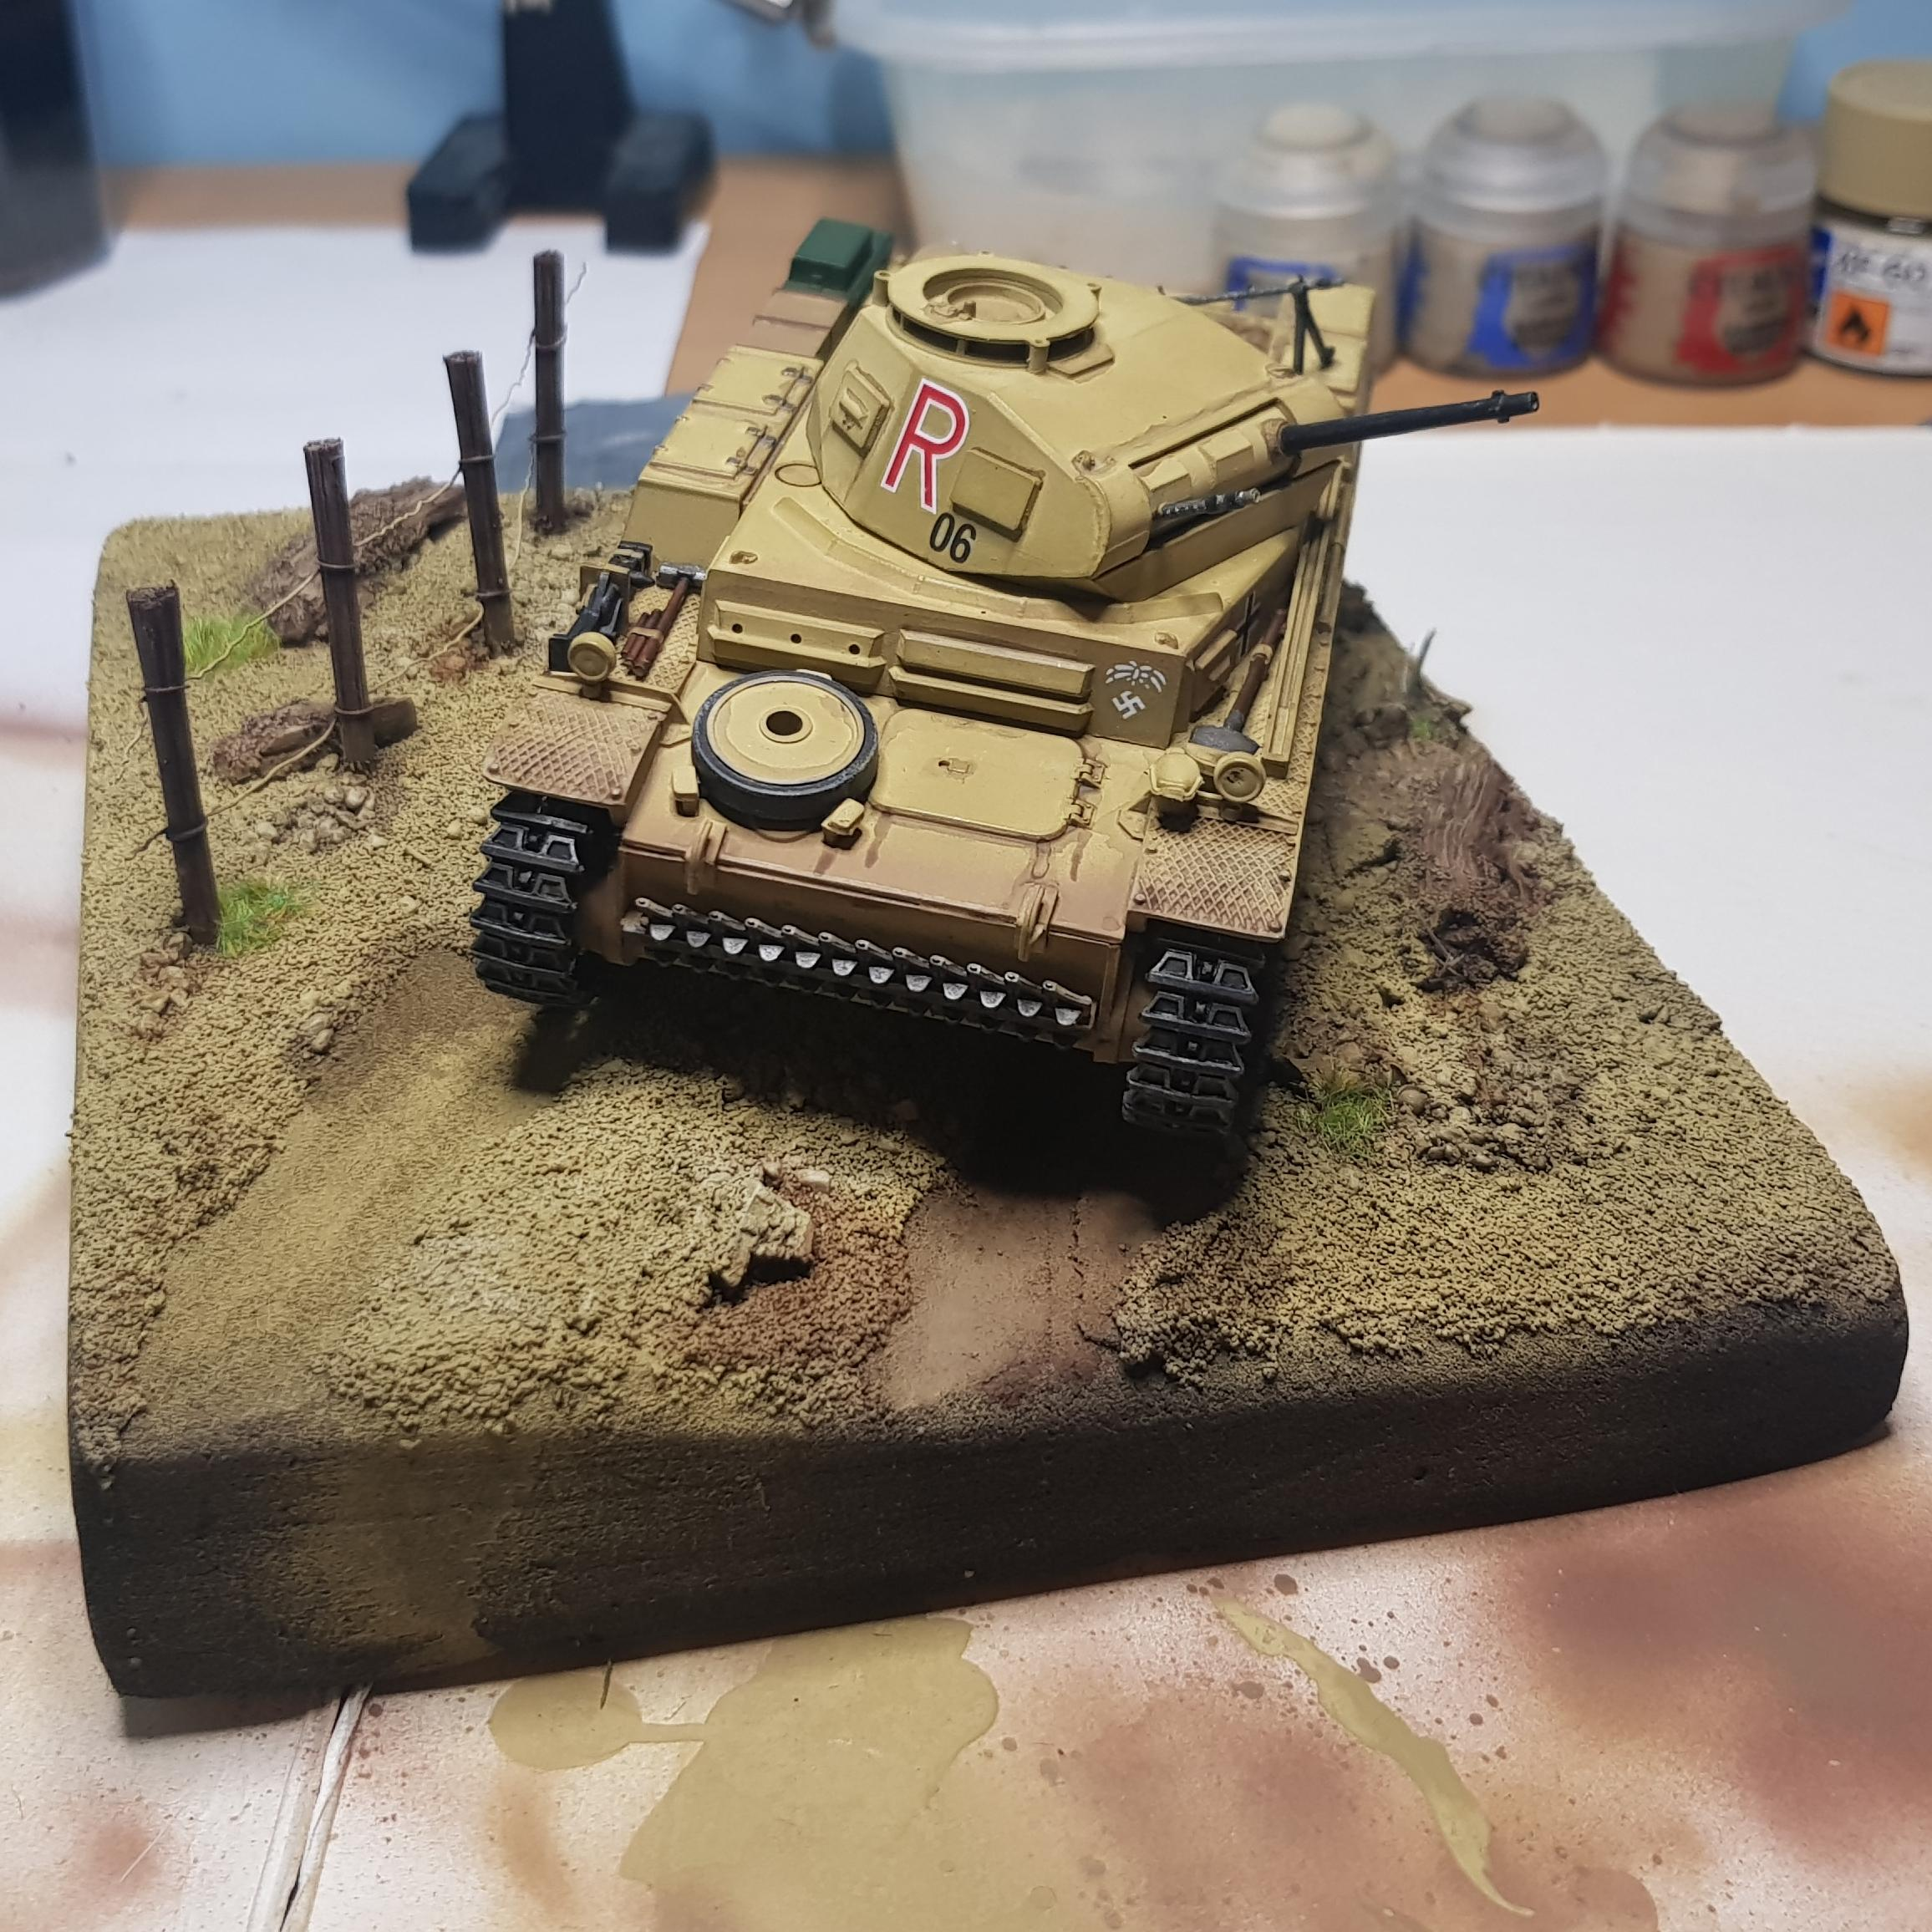 Allies, Axis, Diorama, Modern Warfare, Panzer, Scale, Scale Model, Tank, World War 2